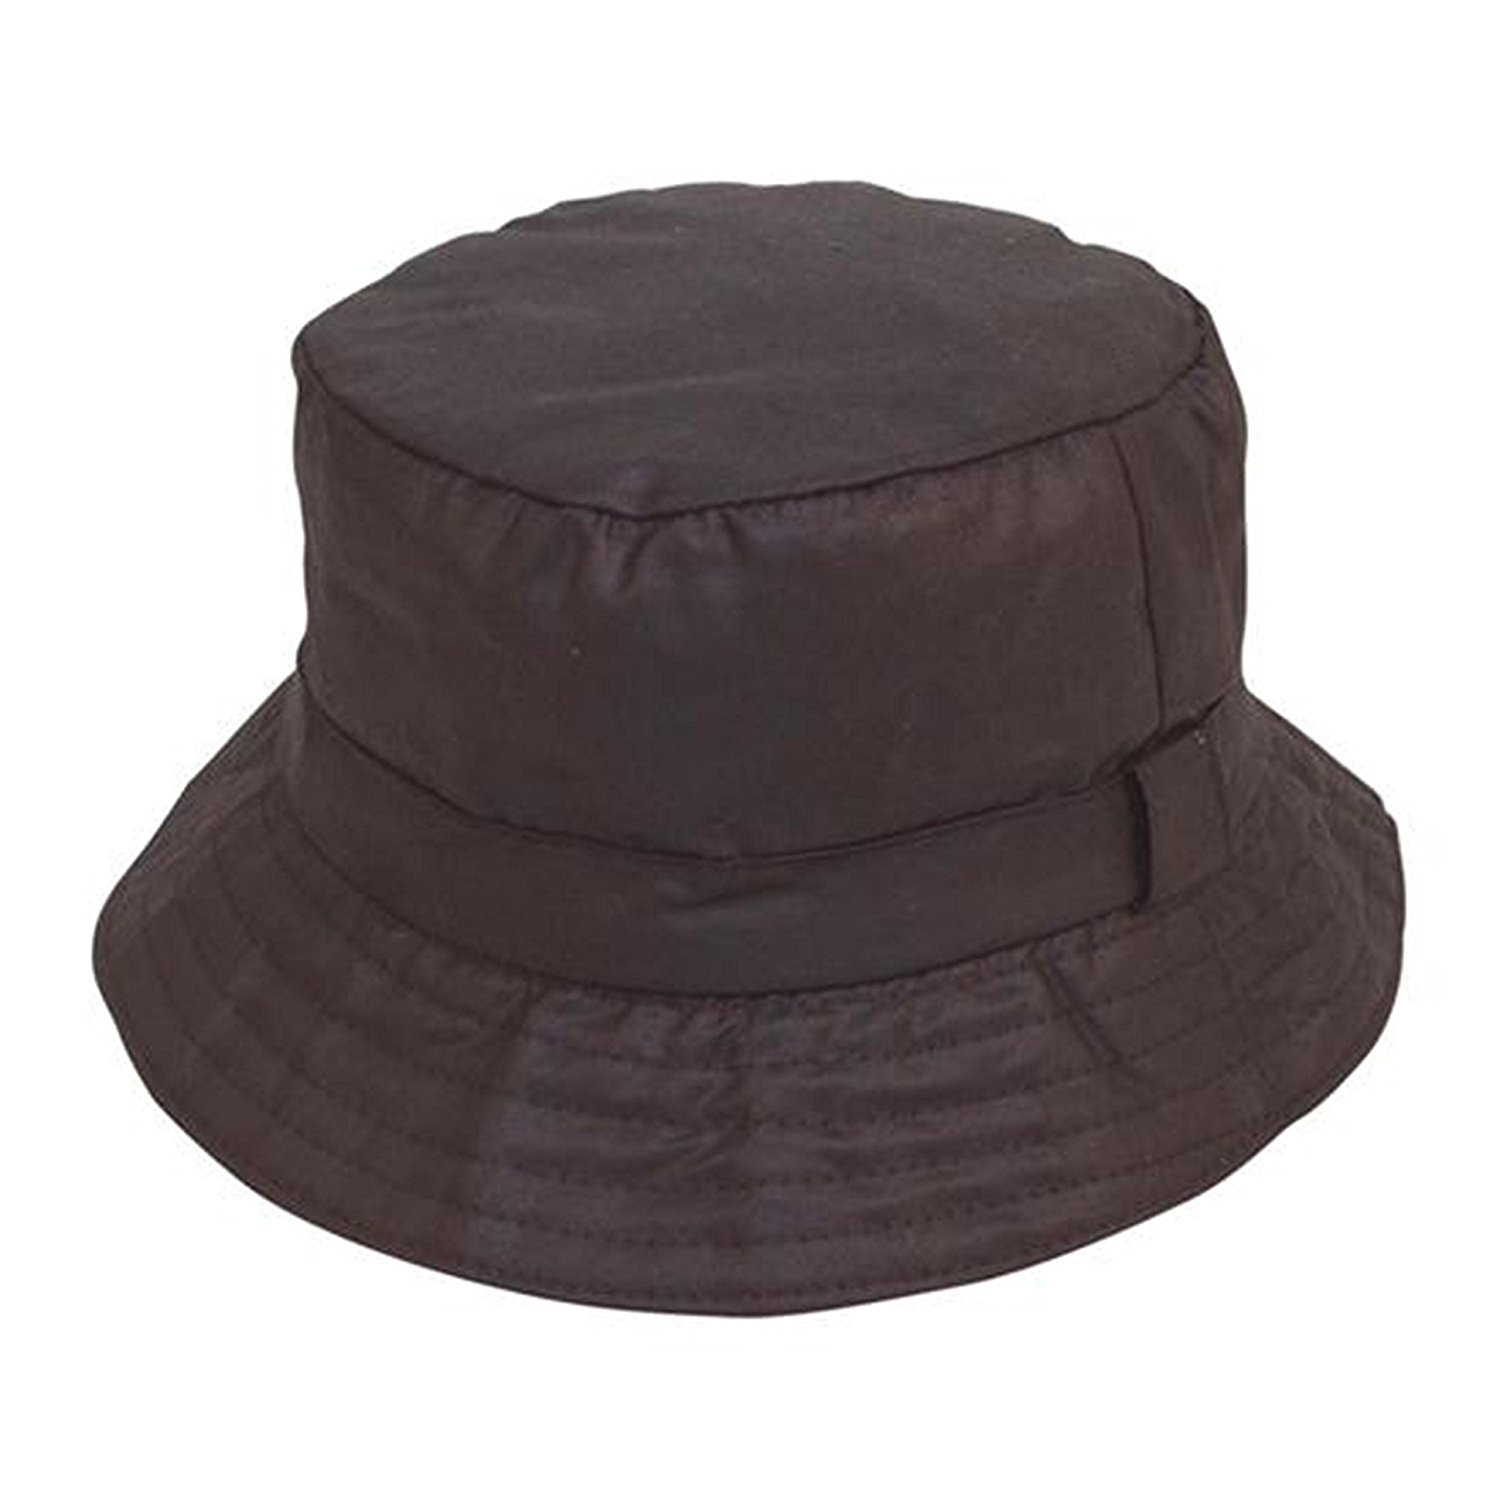 ADULT WAX BUSH BUCKET HAT